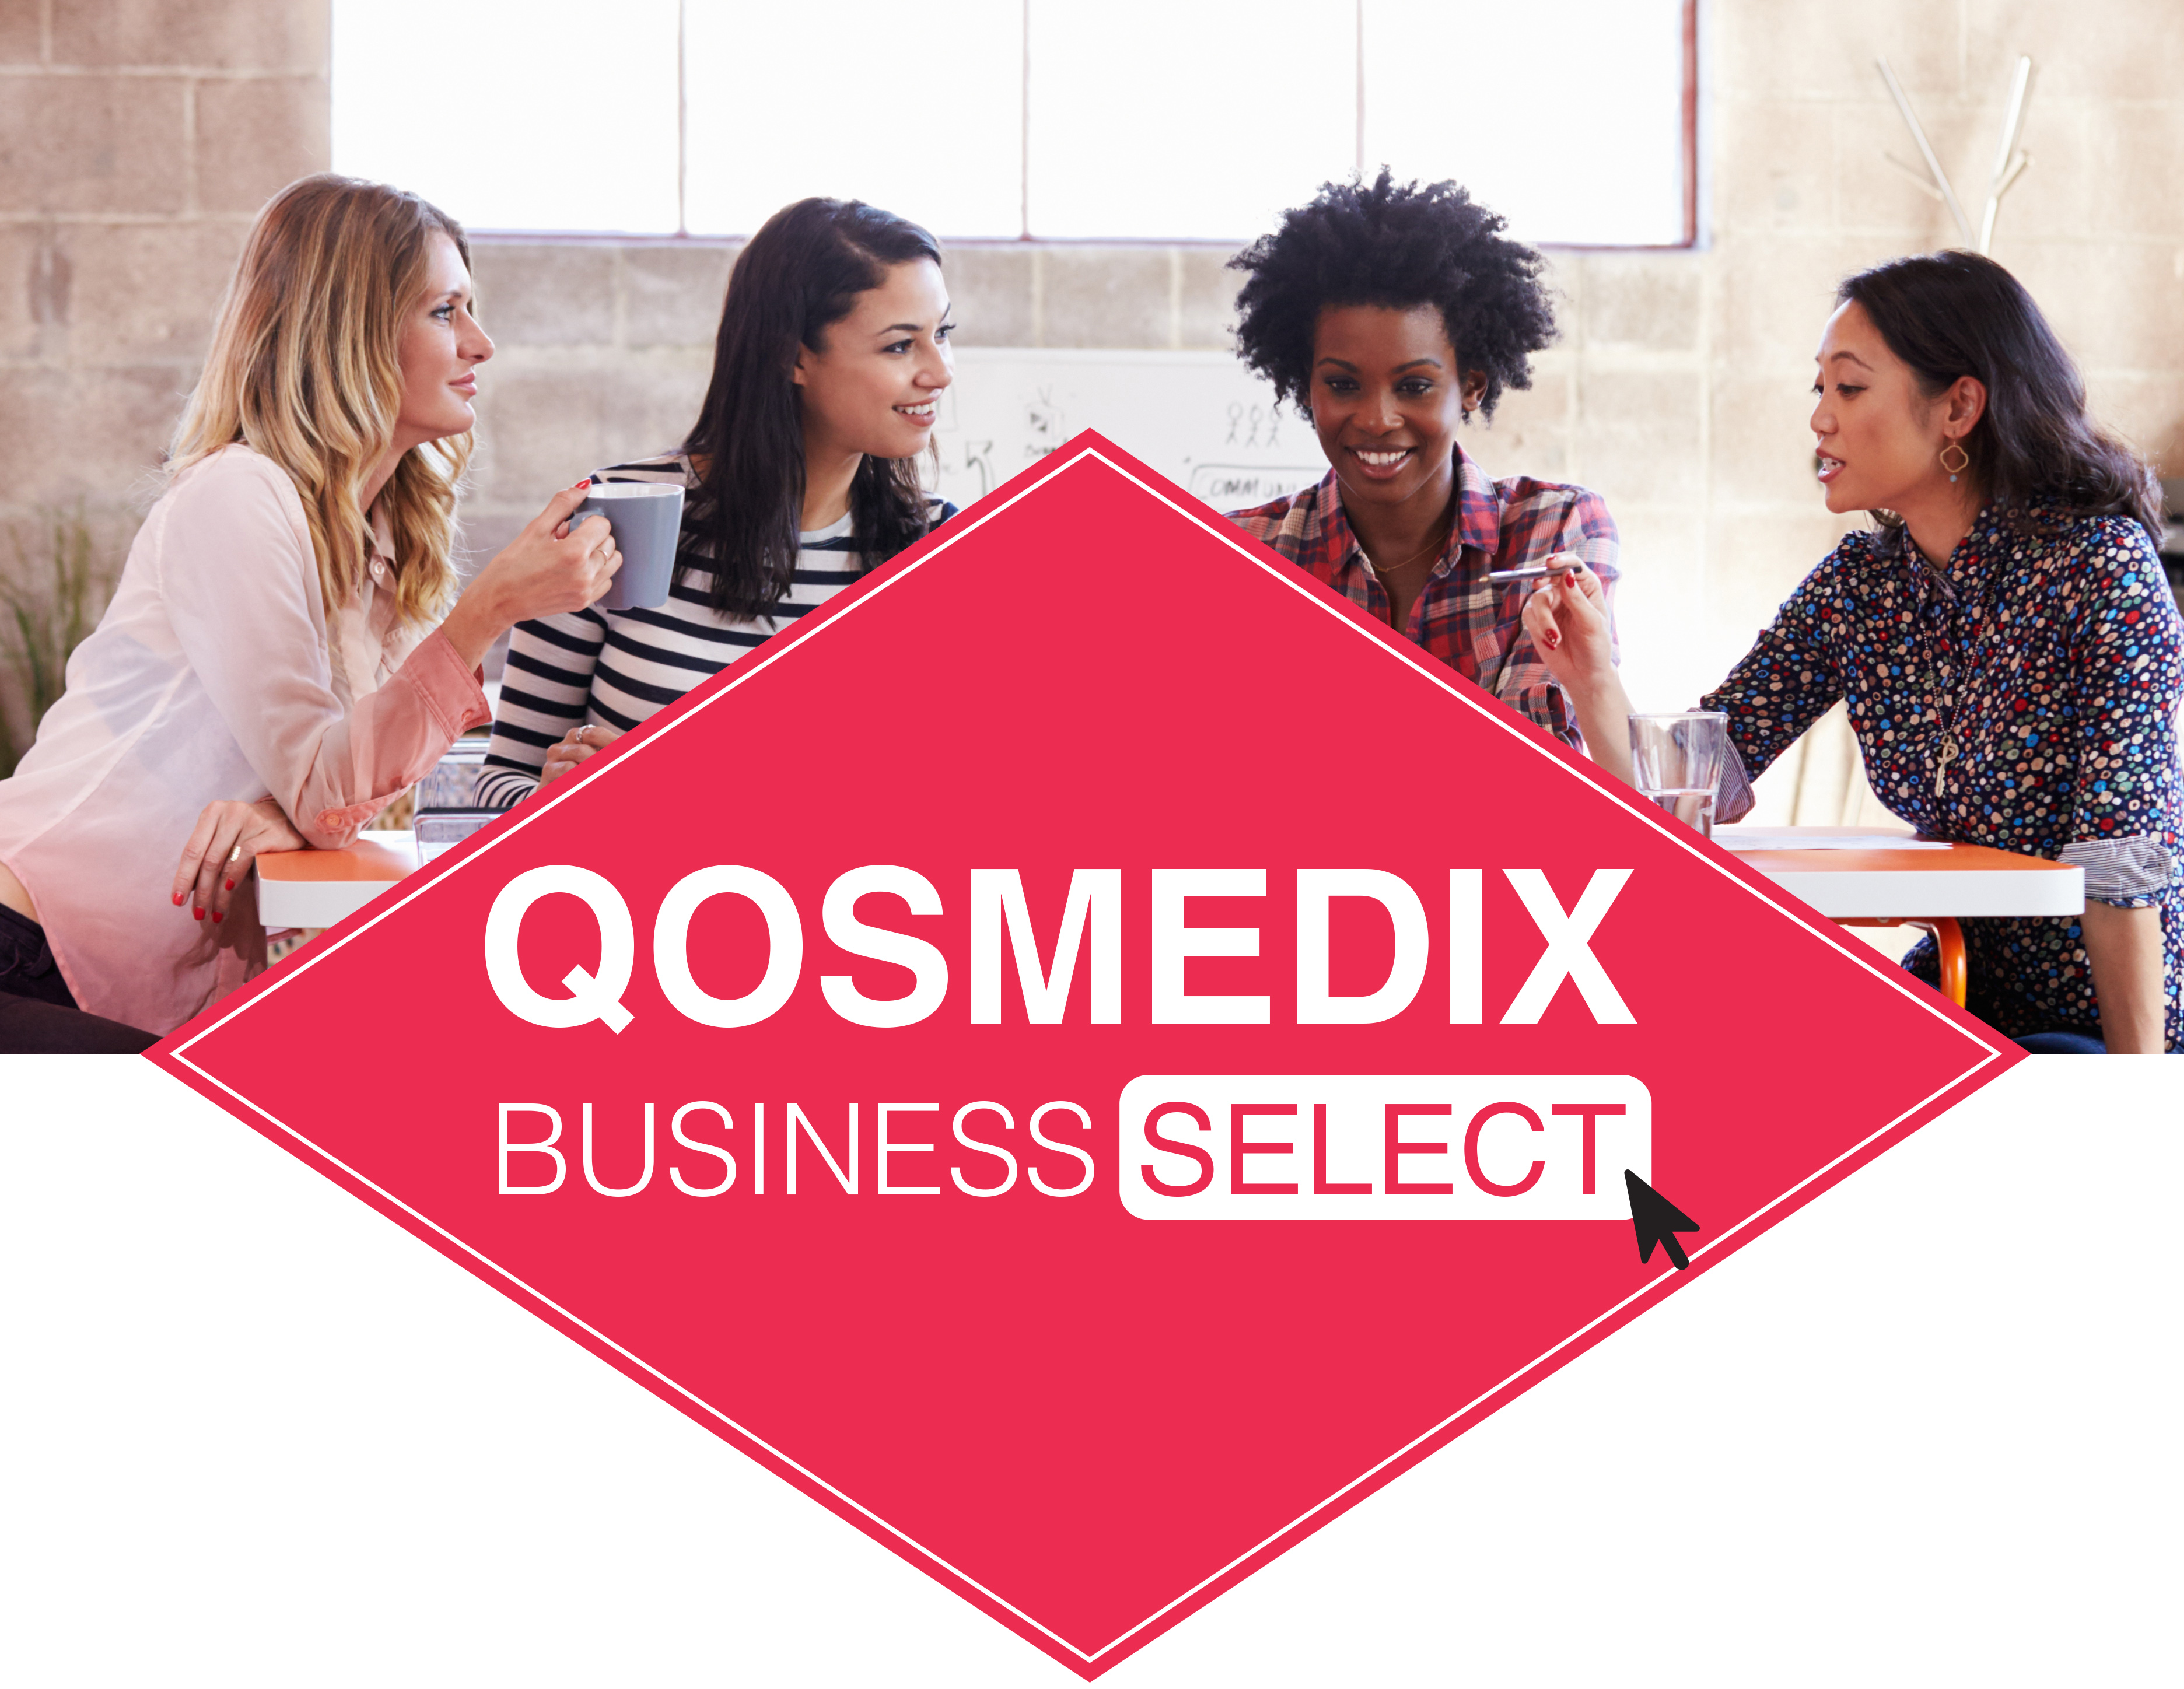 Qosmedix Business Select - Purchasing Made Simple